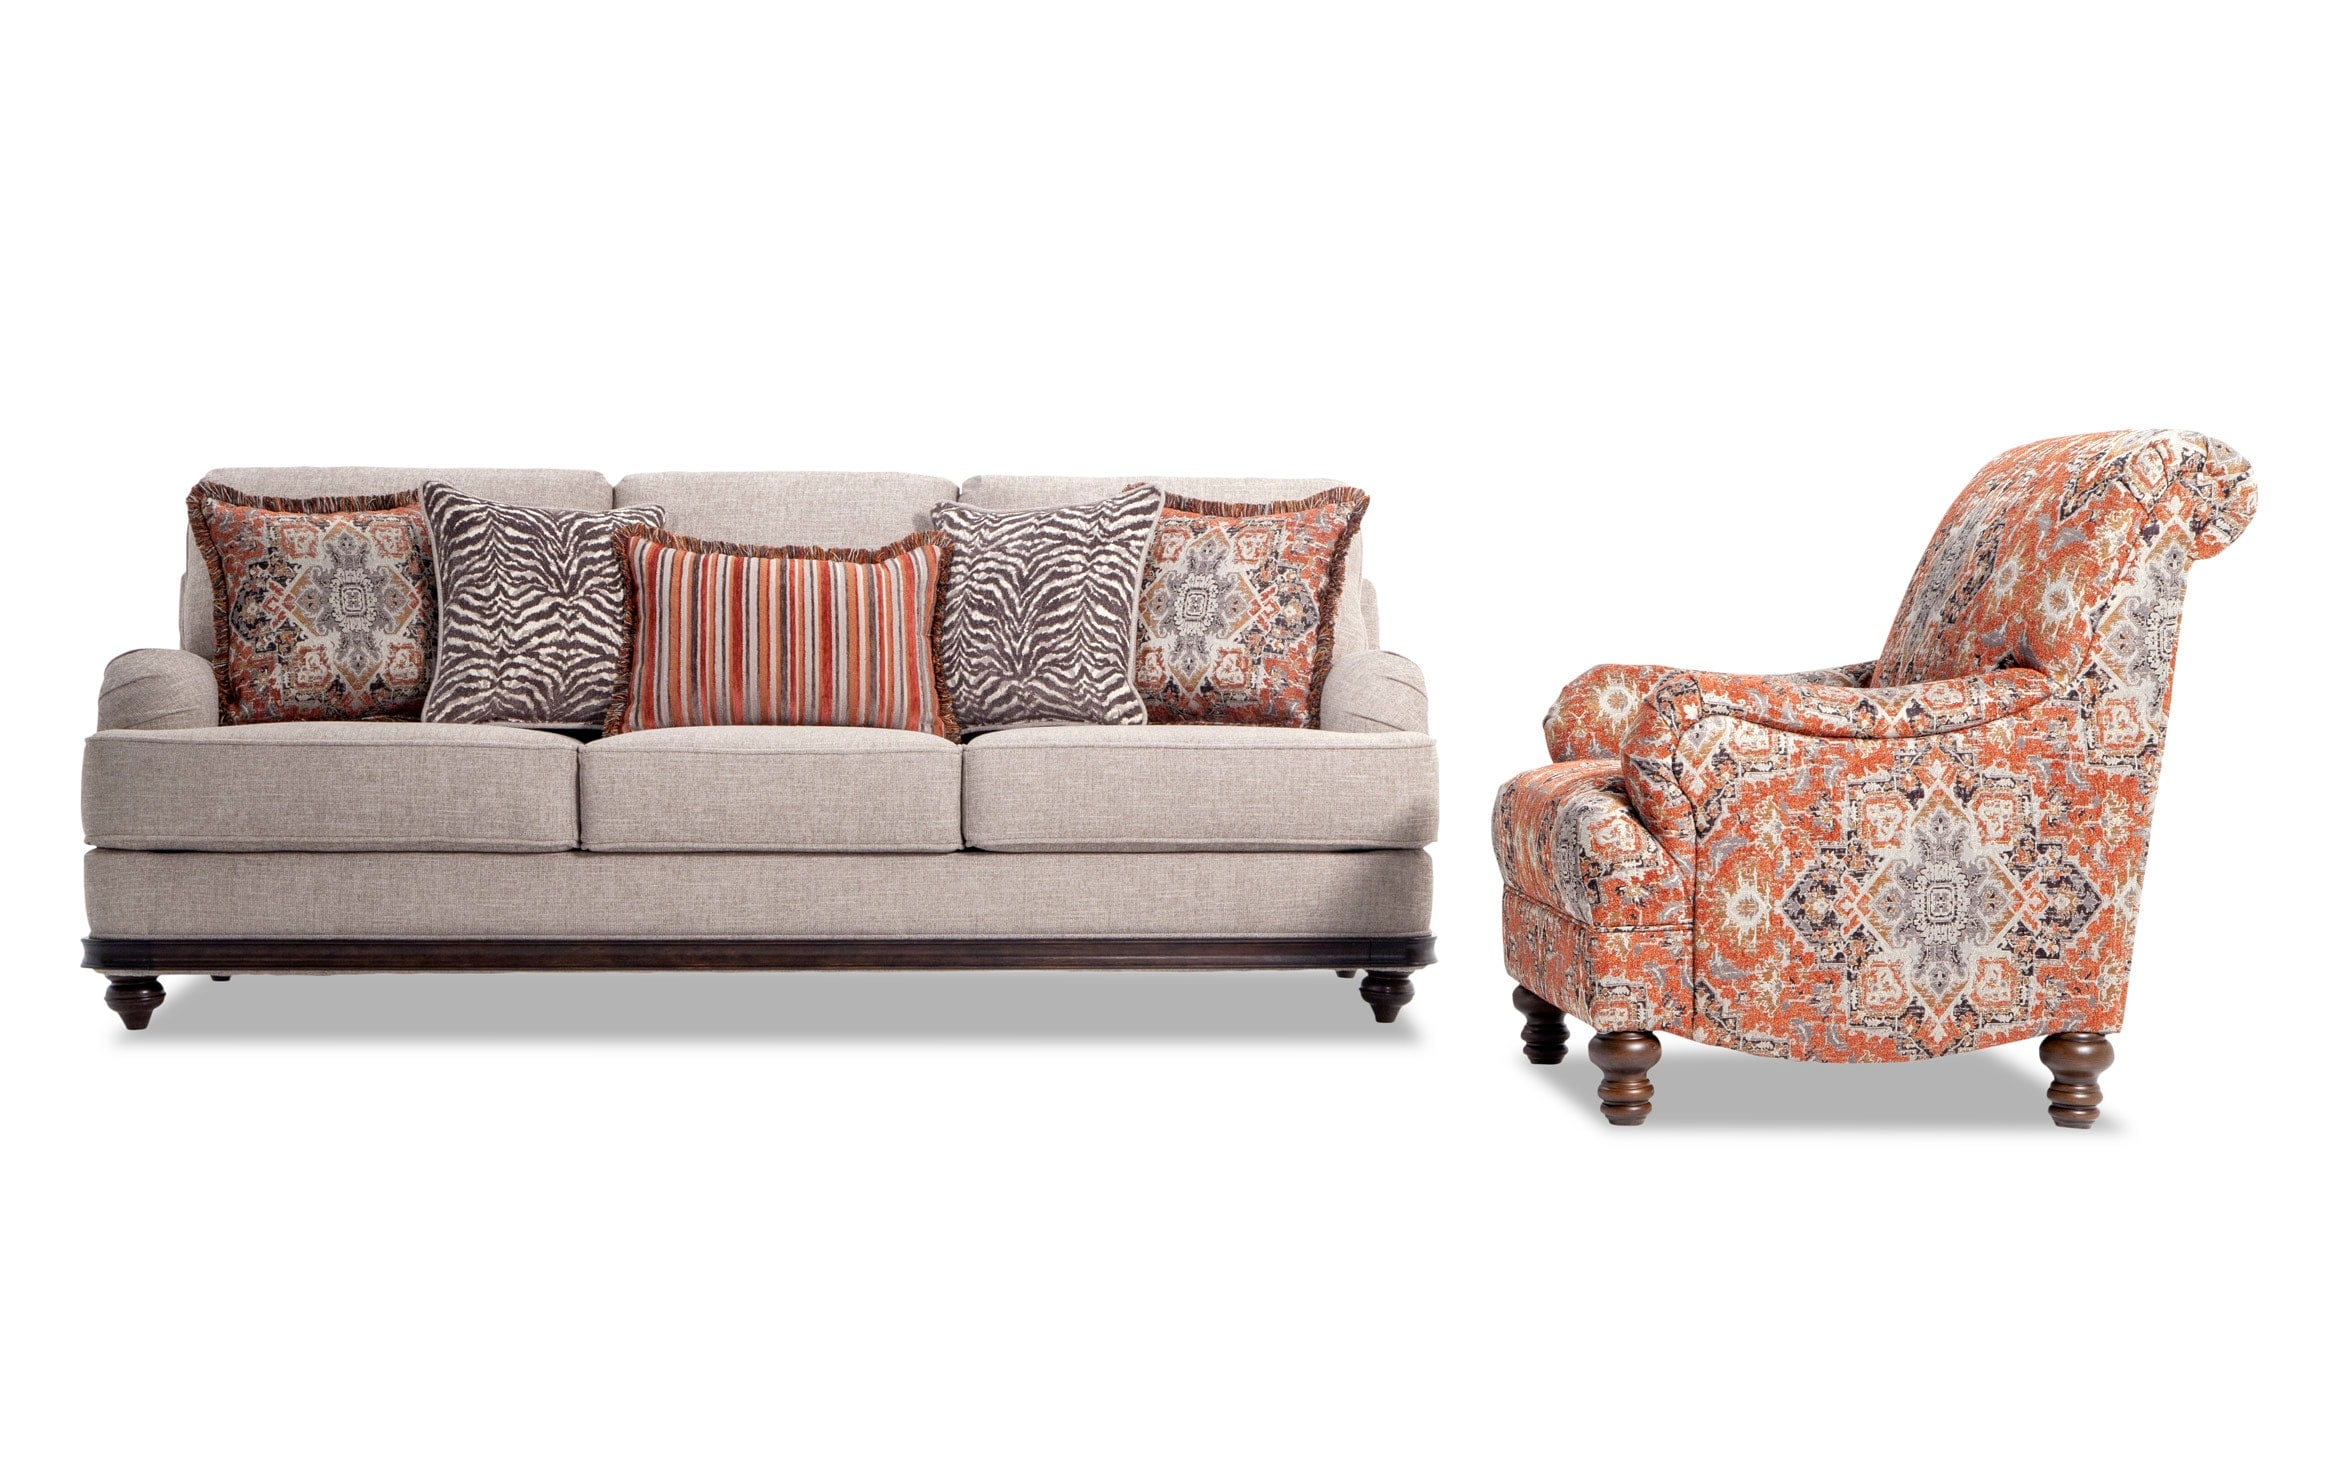 Cora Sofa & Medallion Accent Chair